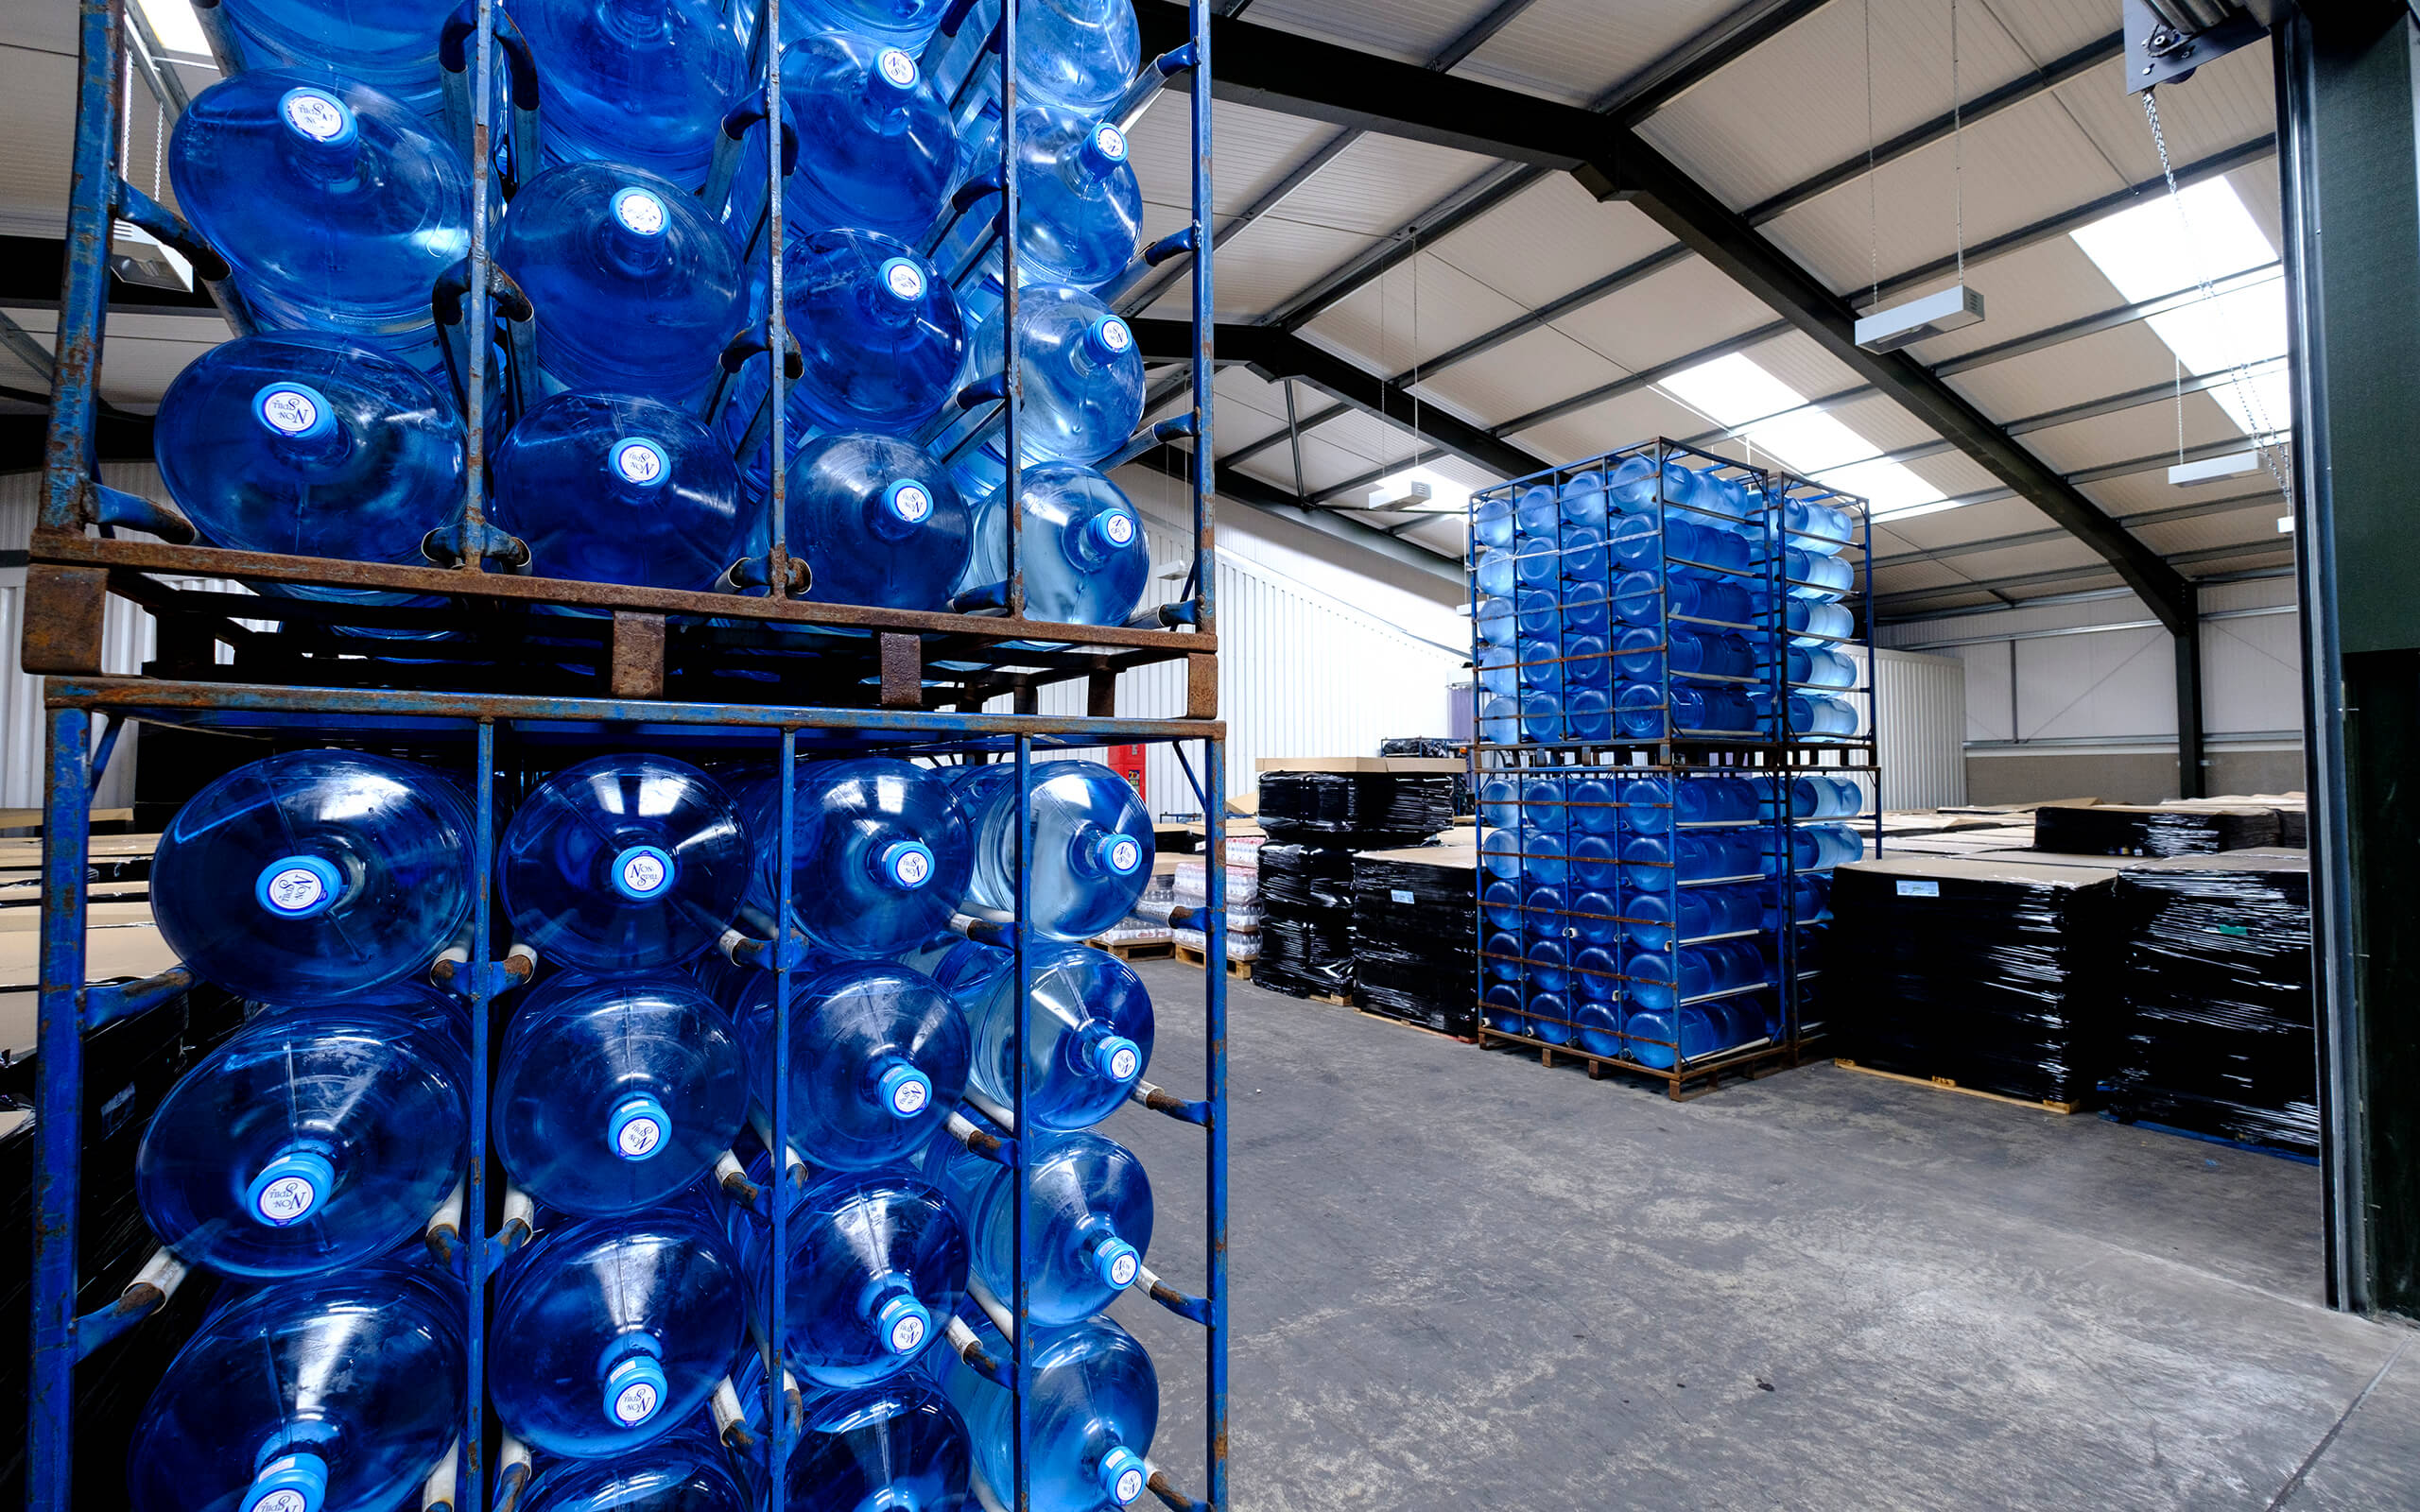 National Springwater crates - blue water bottes stacked.